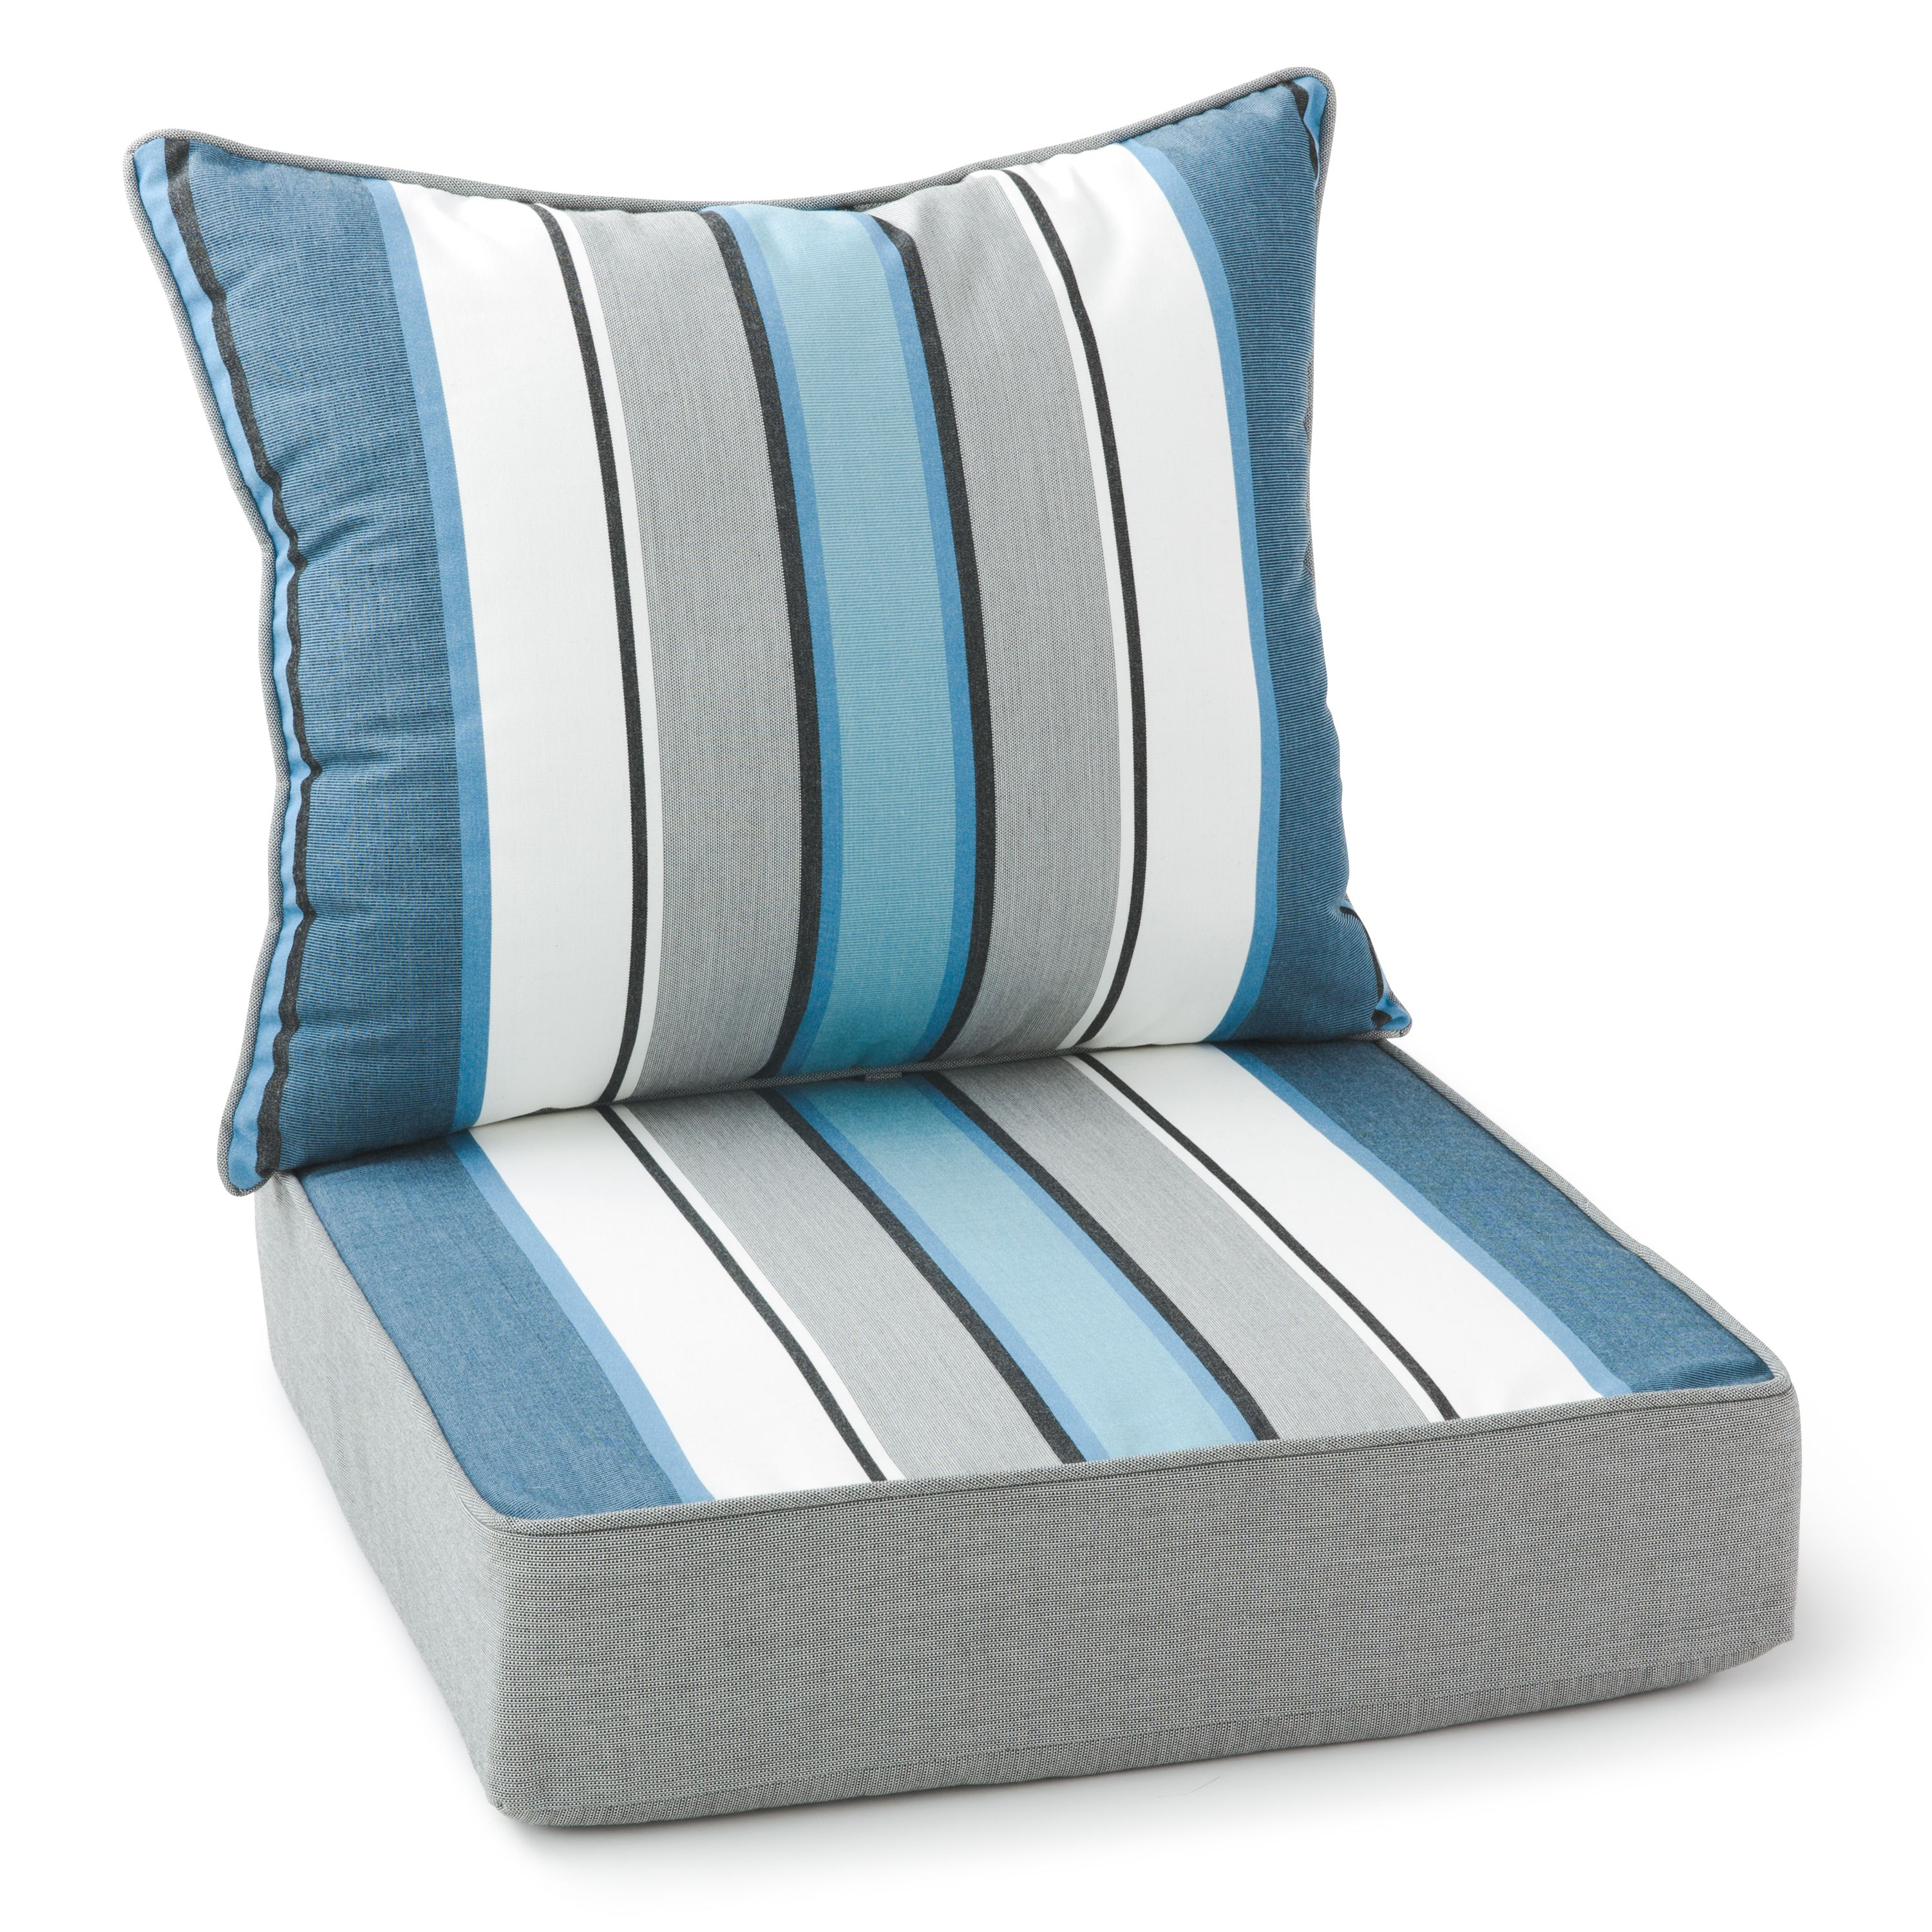 2 Piece Striped Outdoor Lounge Chair